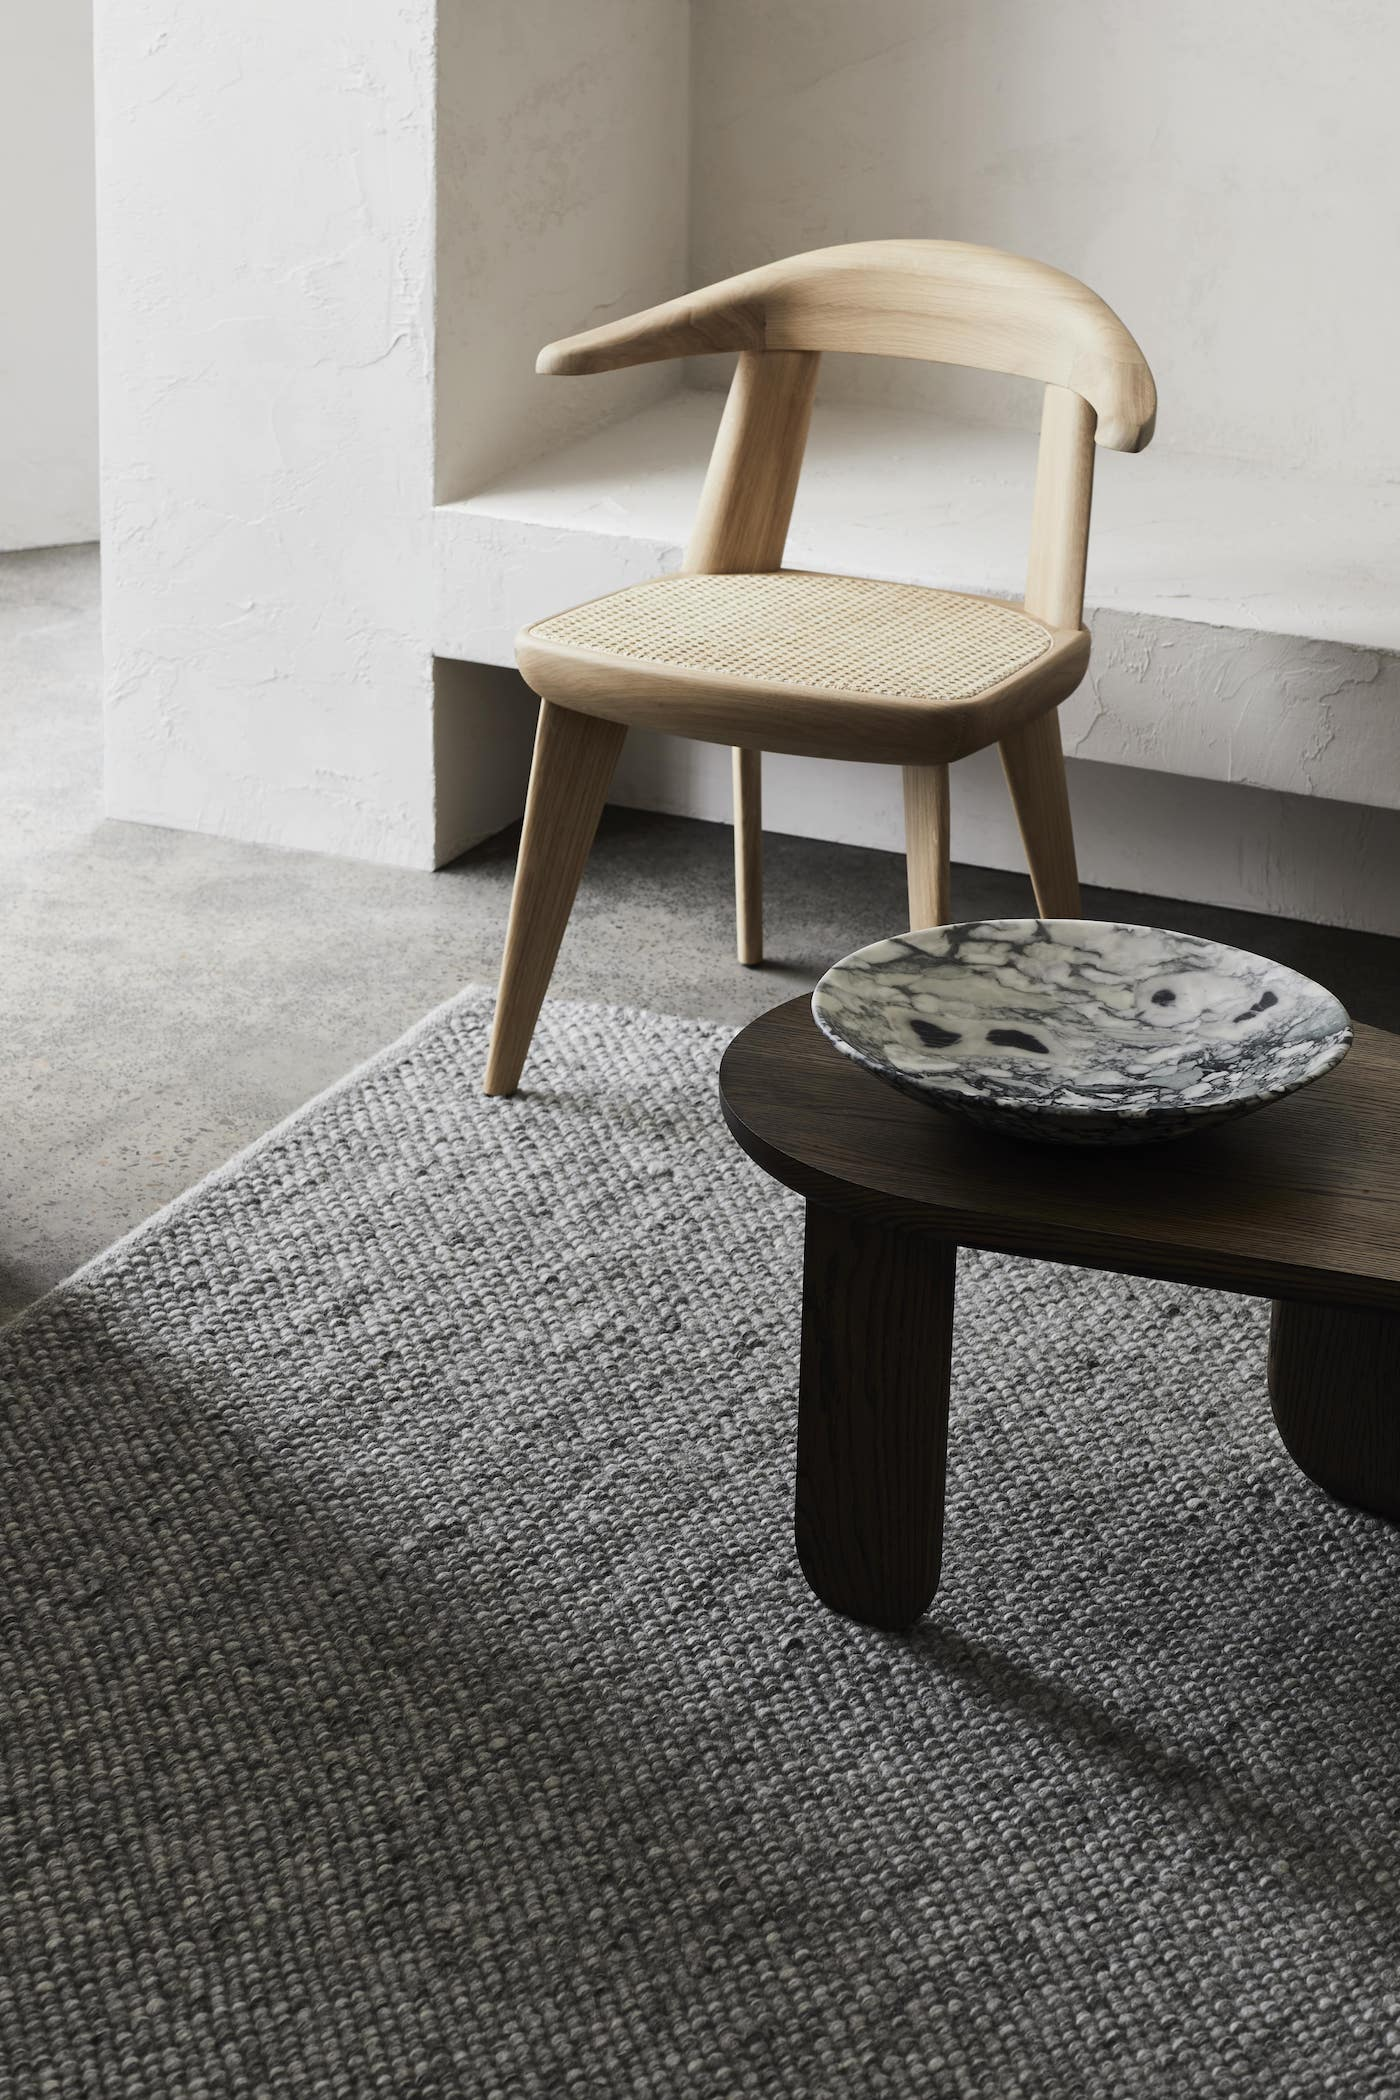 Charcoal with light timber chair